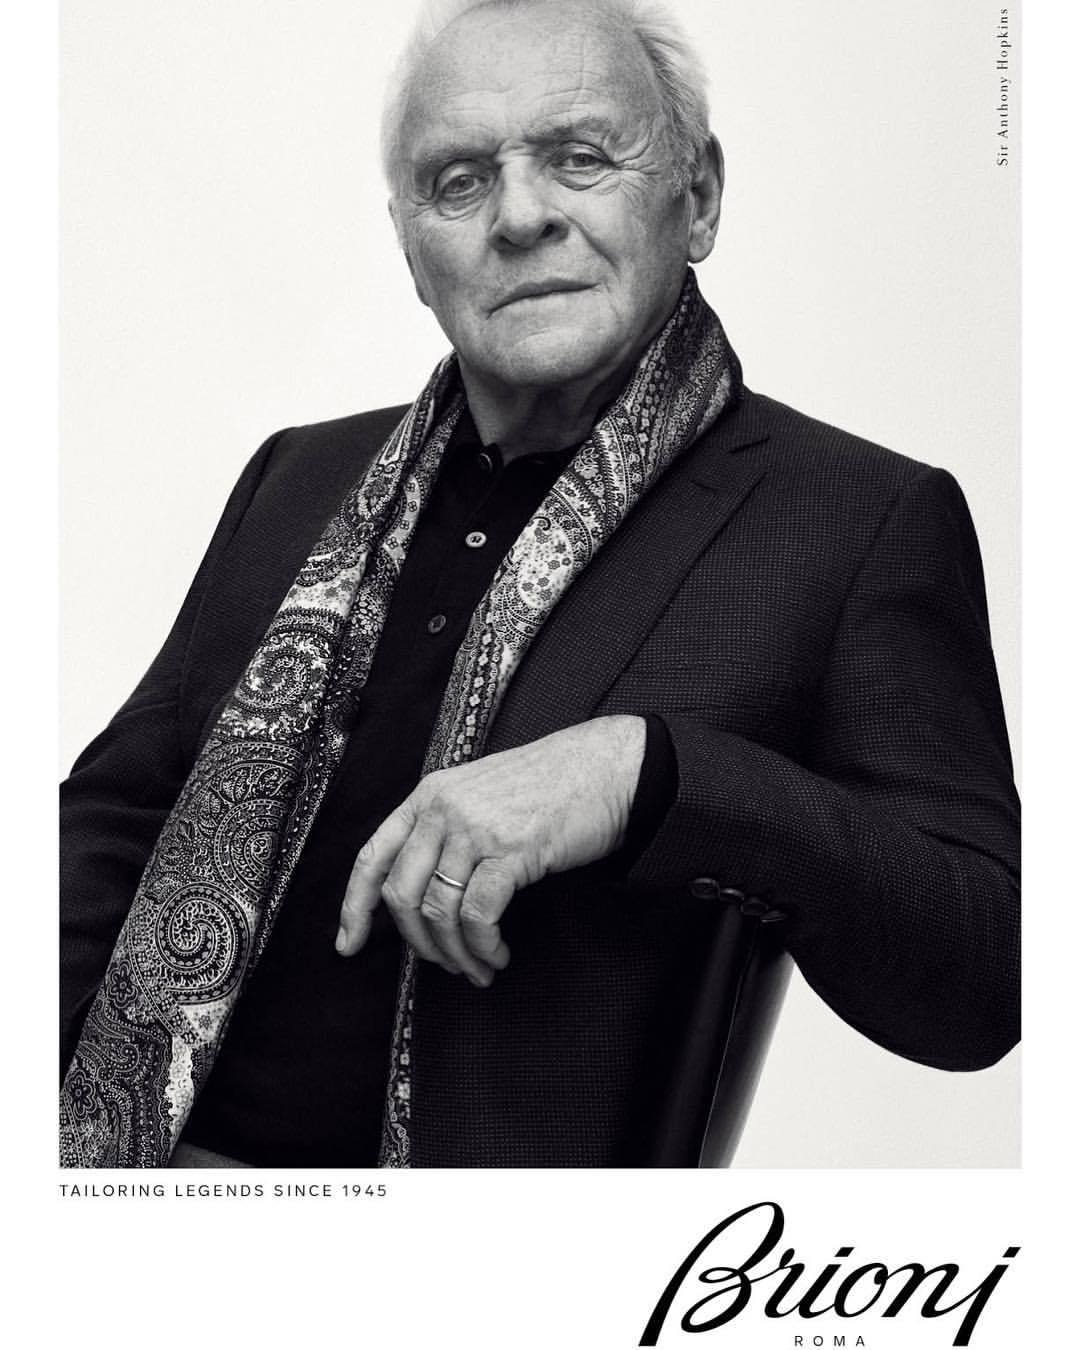 HOT campaign.  -  #anthonyhopkins #brioni #mendressingwell